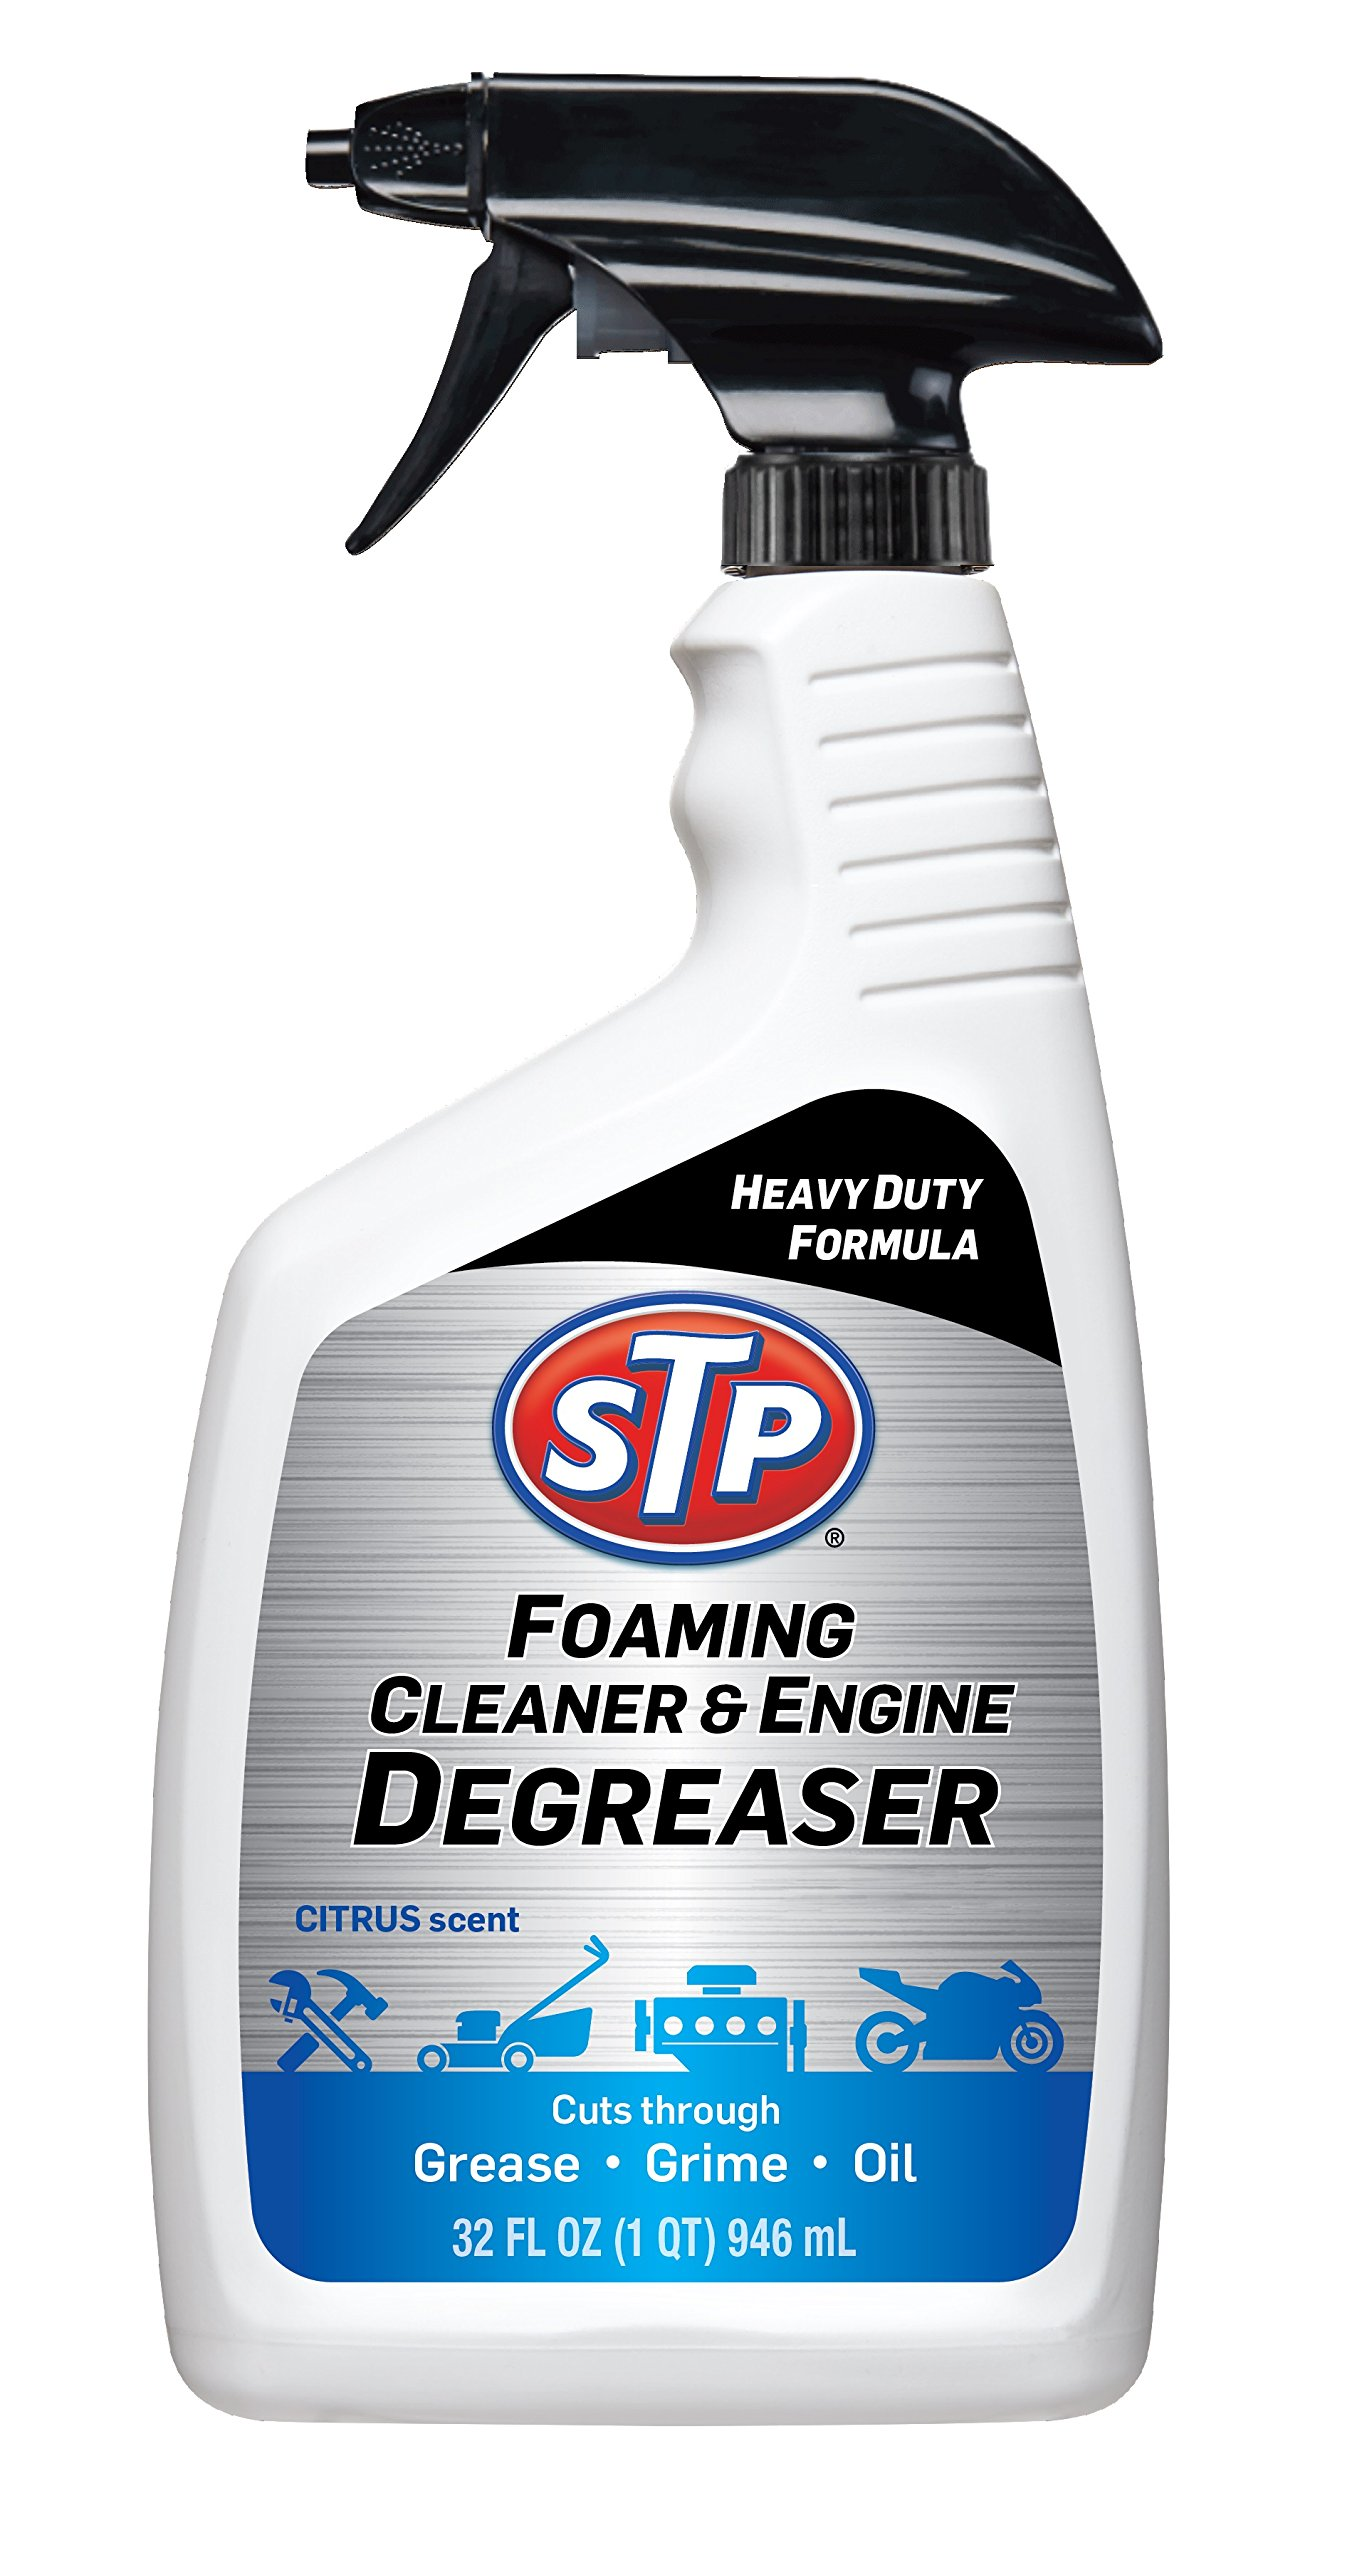 STP Foaming Cleaner & Engine Degreaser (32 fl. oz.)